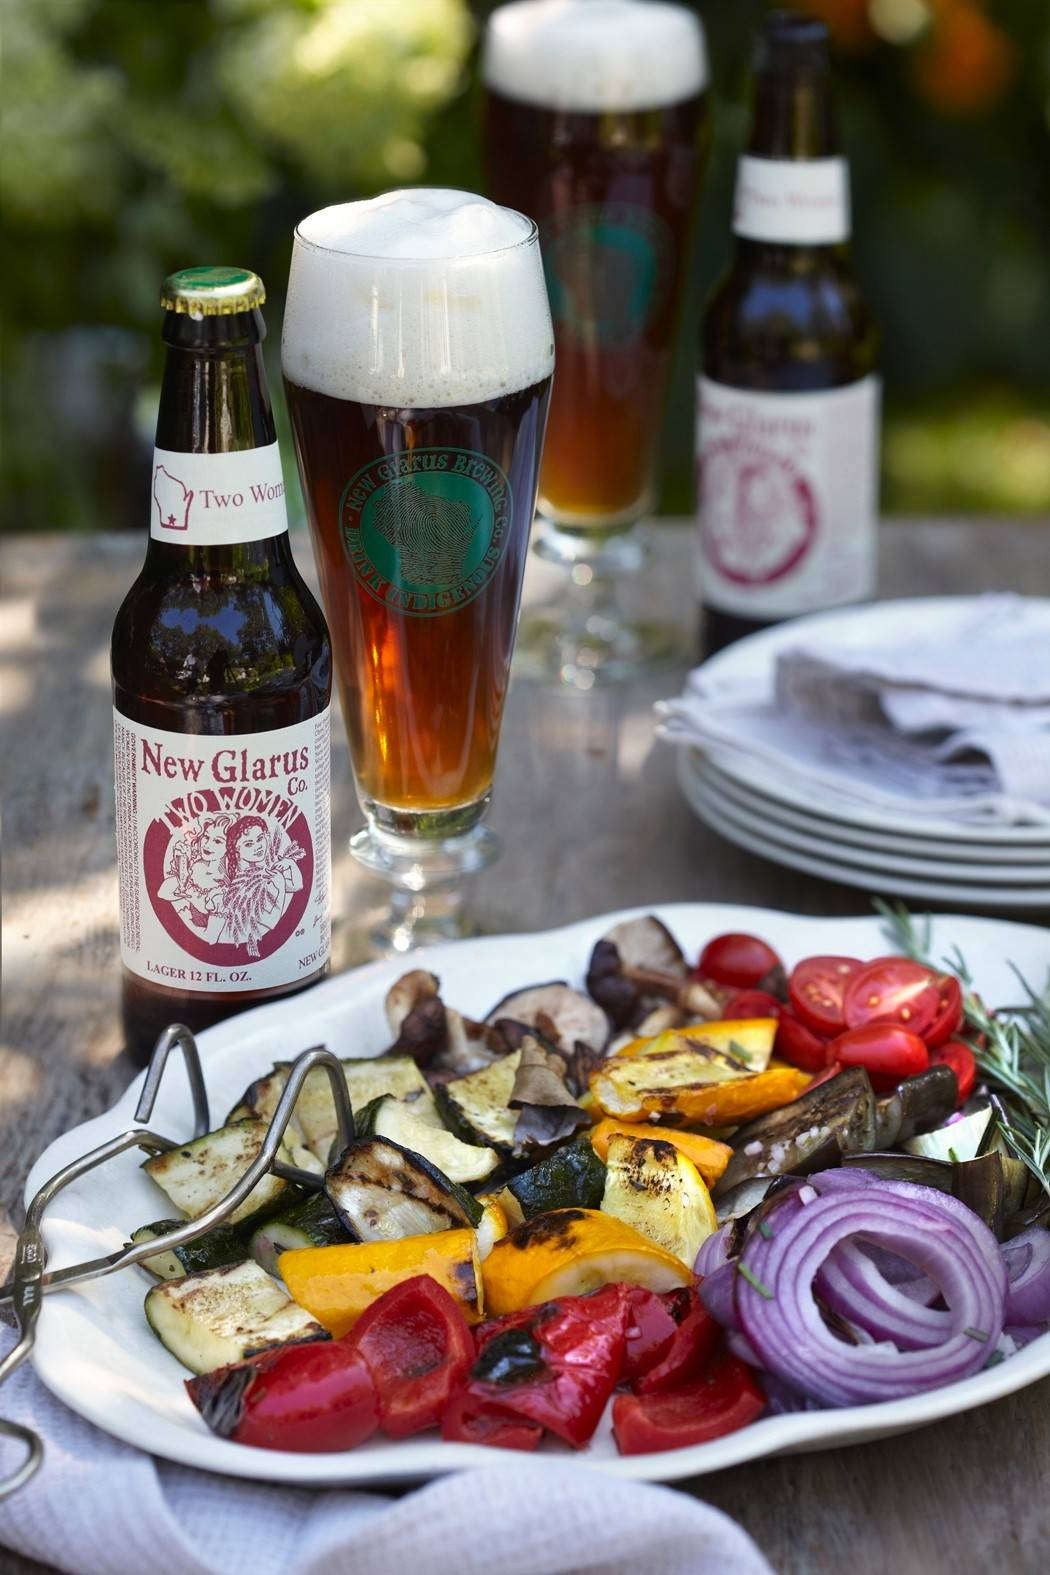 Vegetables sit in an herby marinade before hitting the grill, and then get tossed back in it for a lively summer salad.